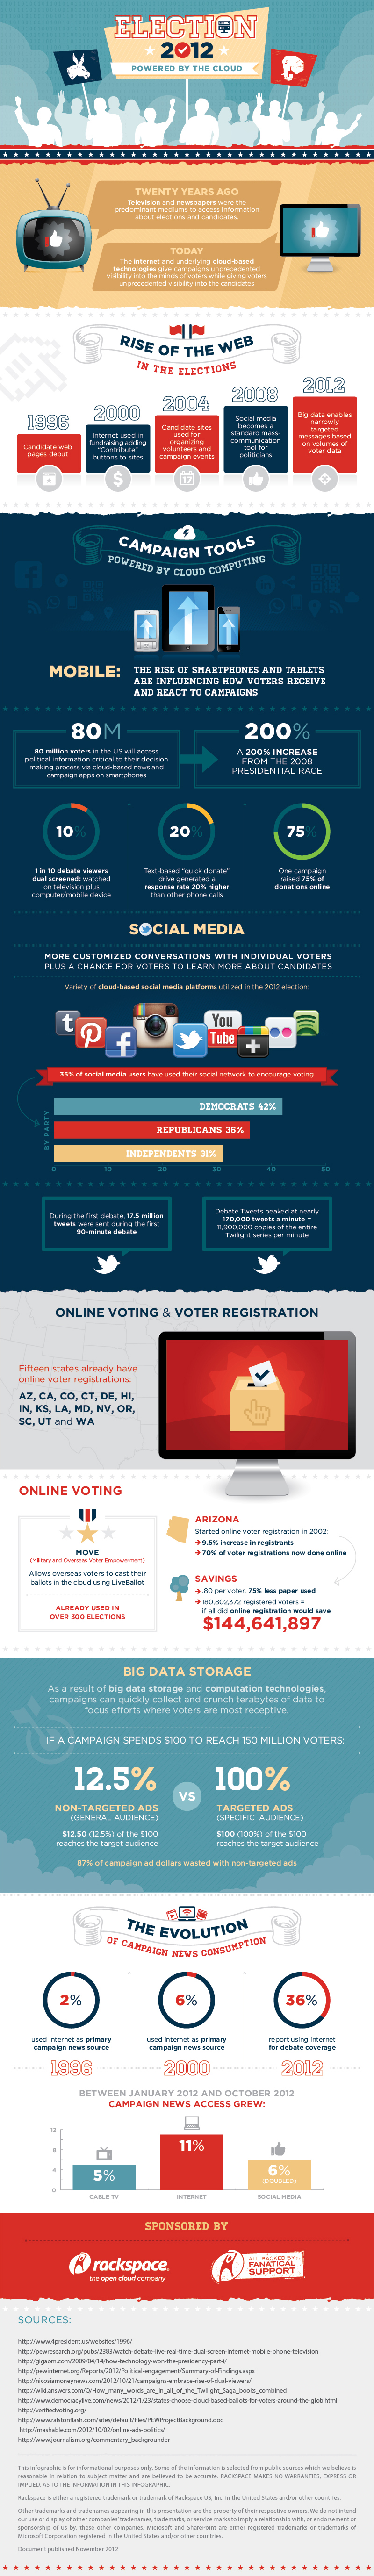 Rackspace  Election 2012: Powered By The Cloud [INFOGRAPHIC]